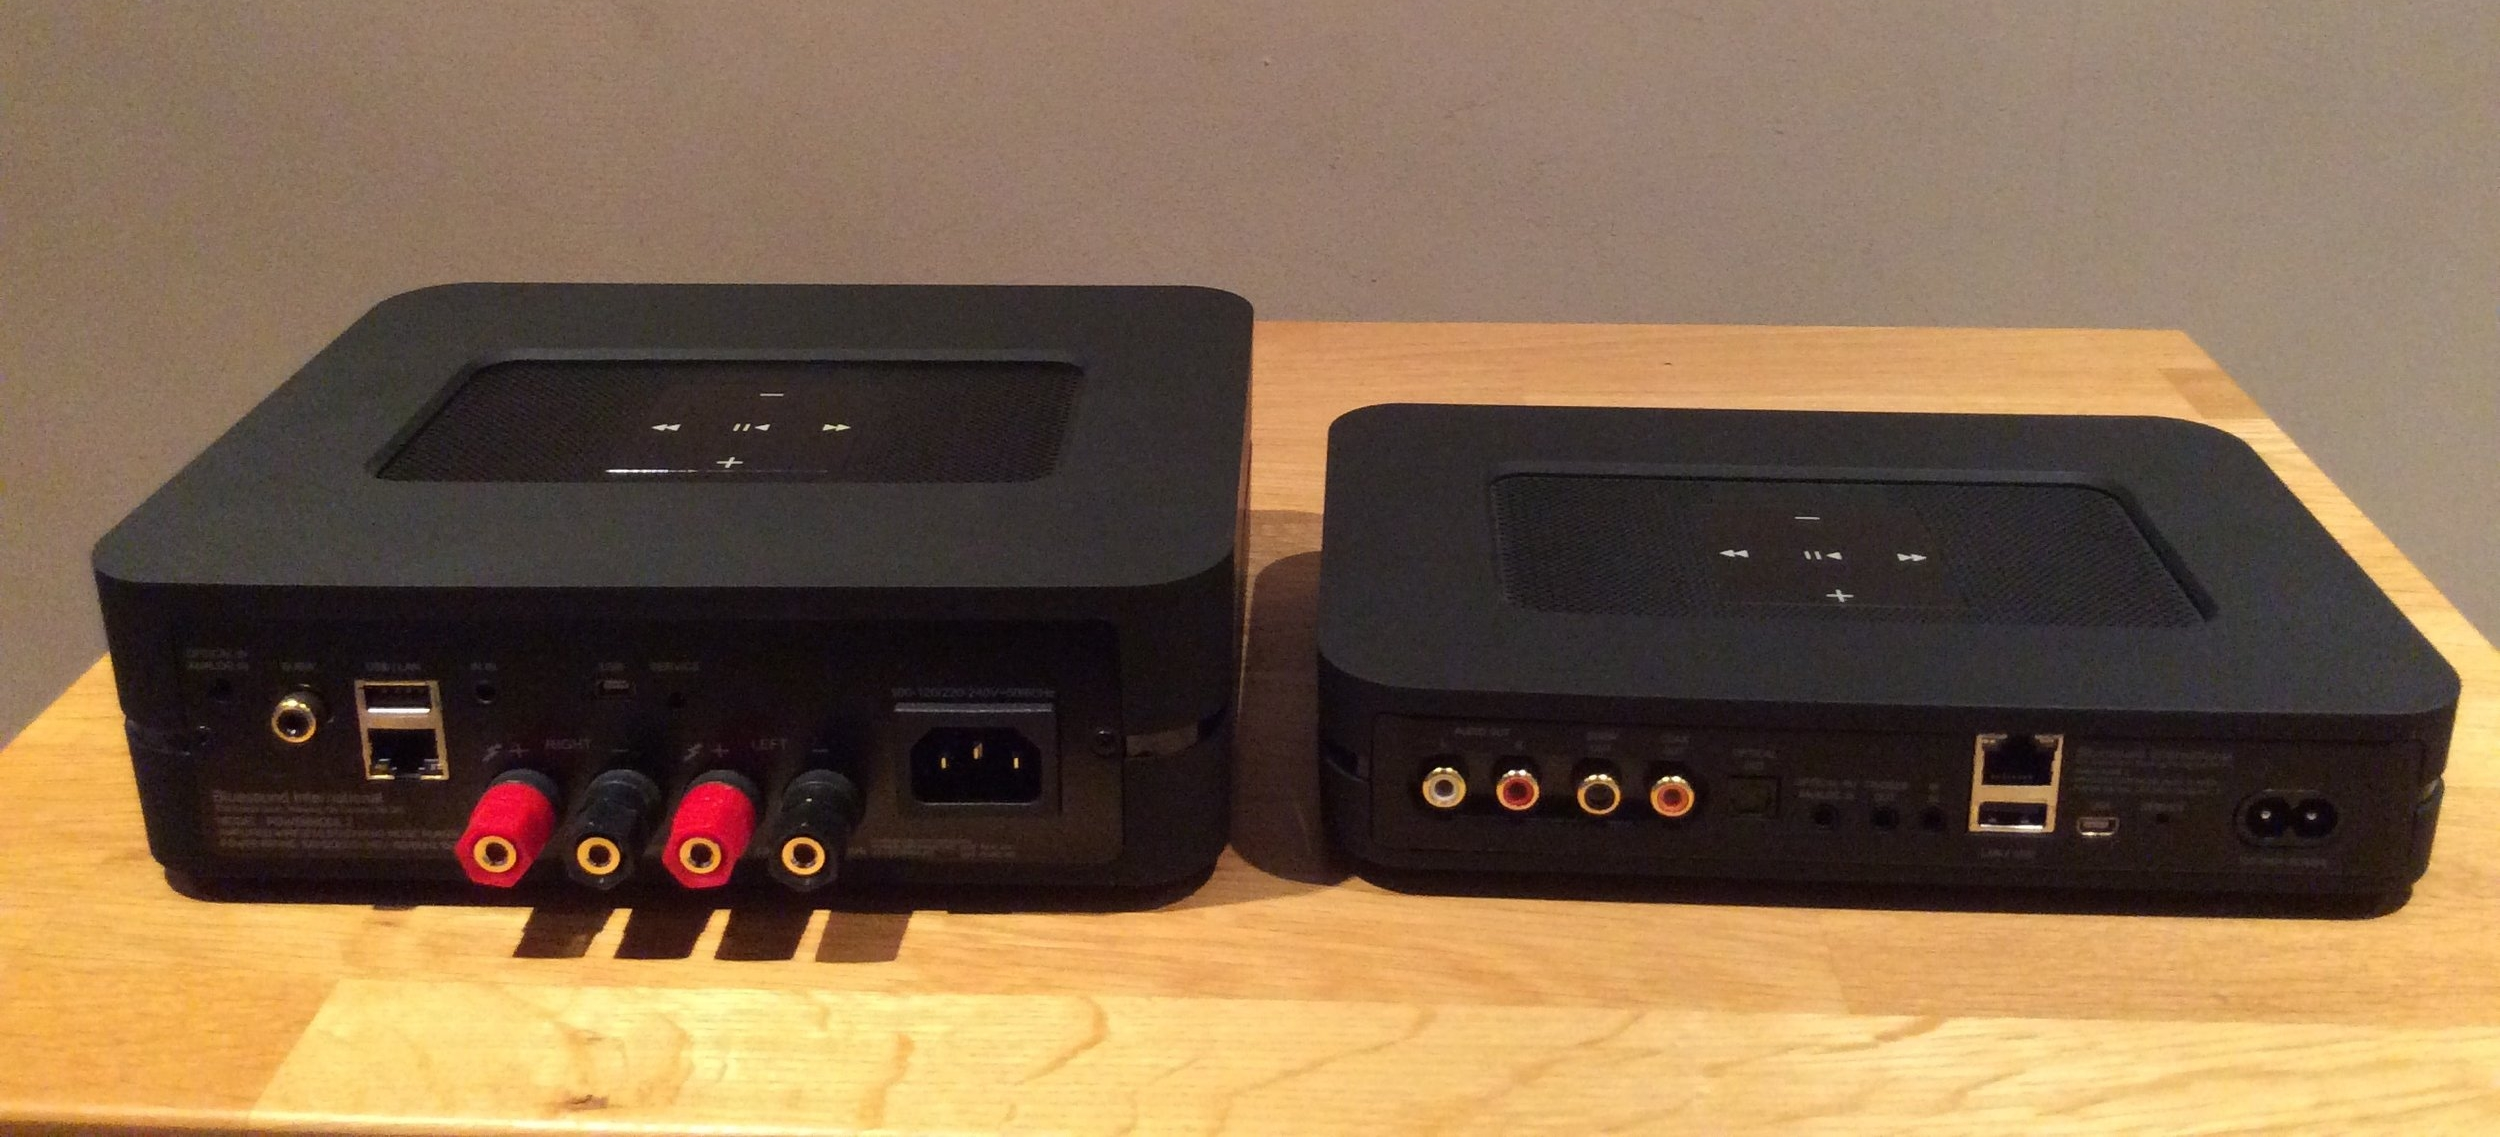 Powernode 2 on the left and Node 2 on the right